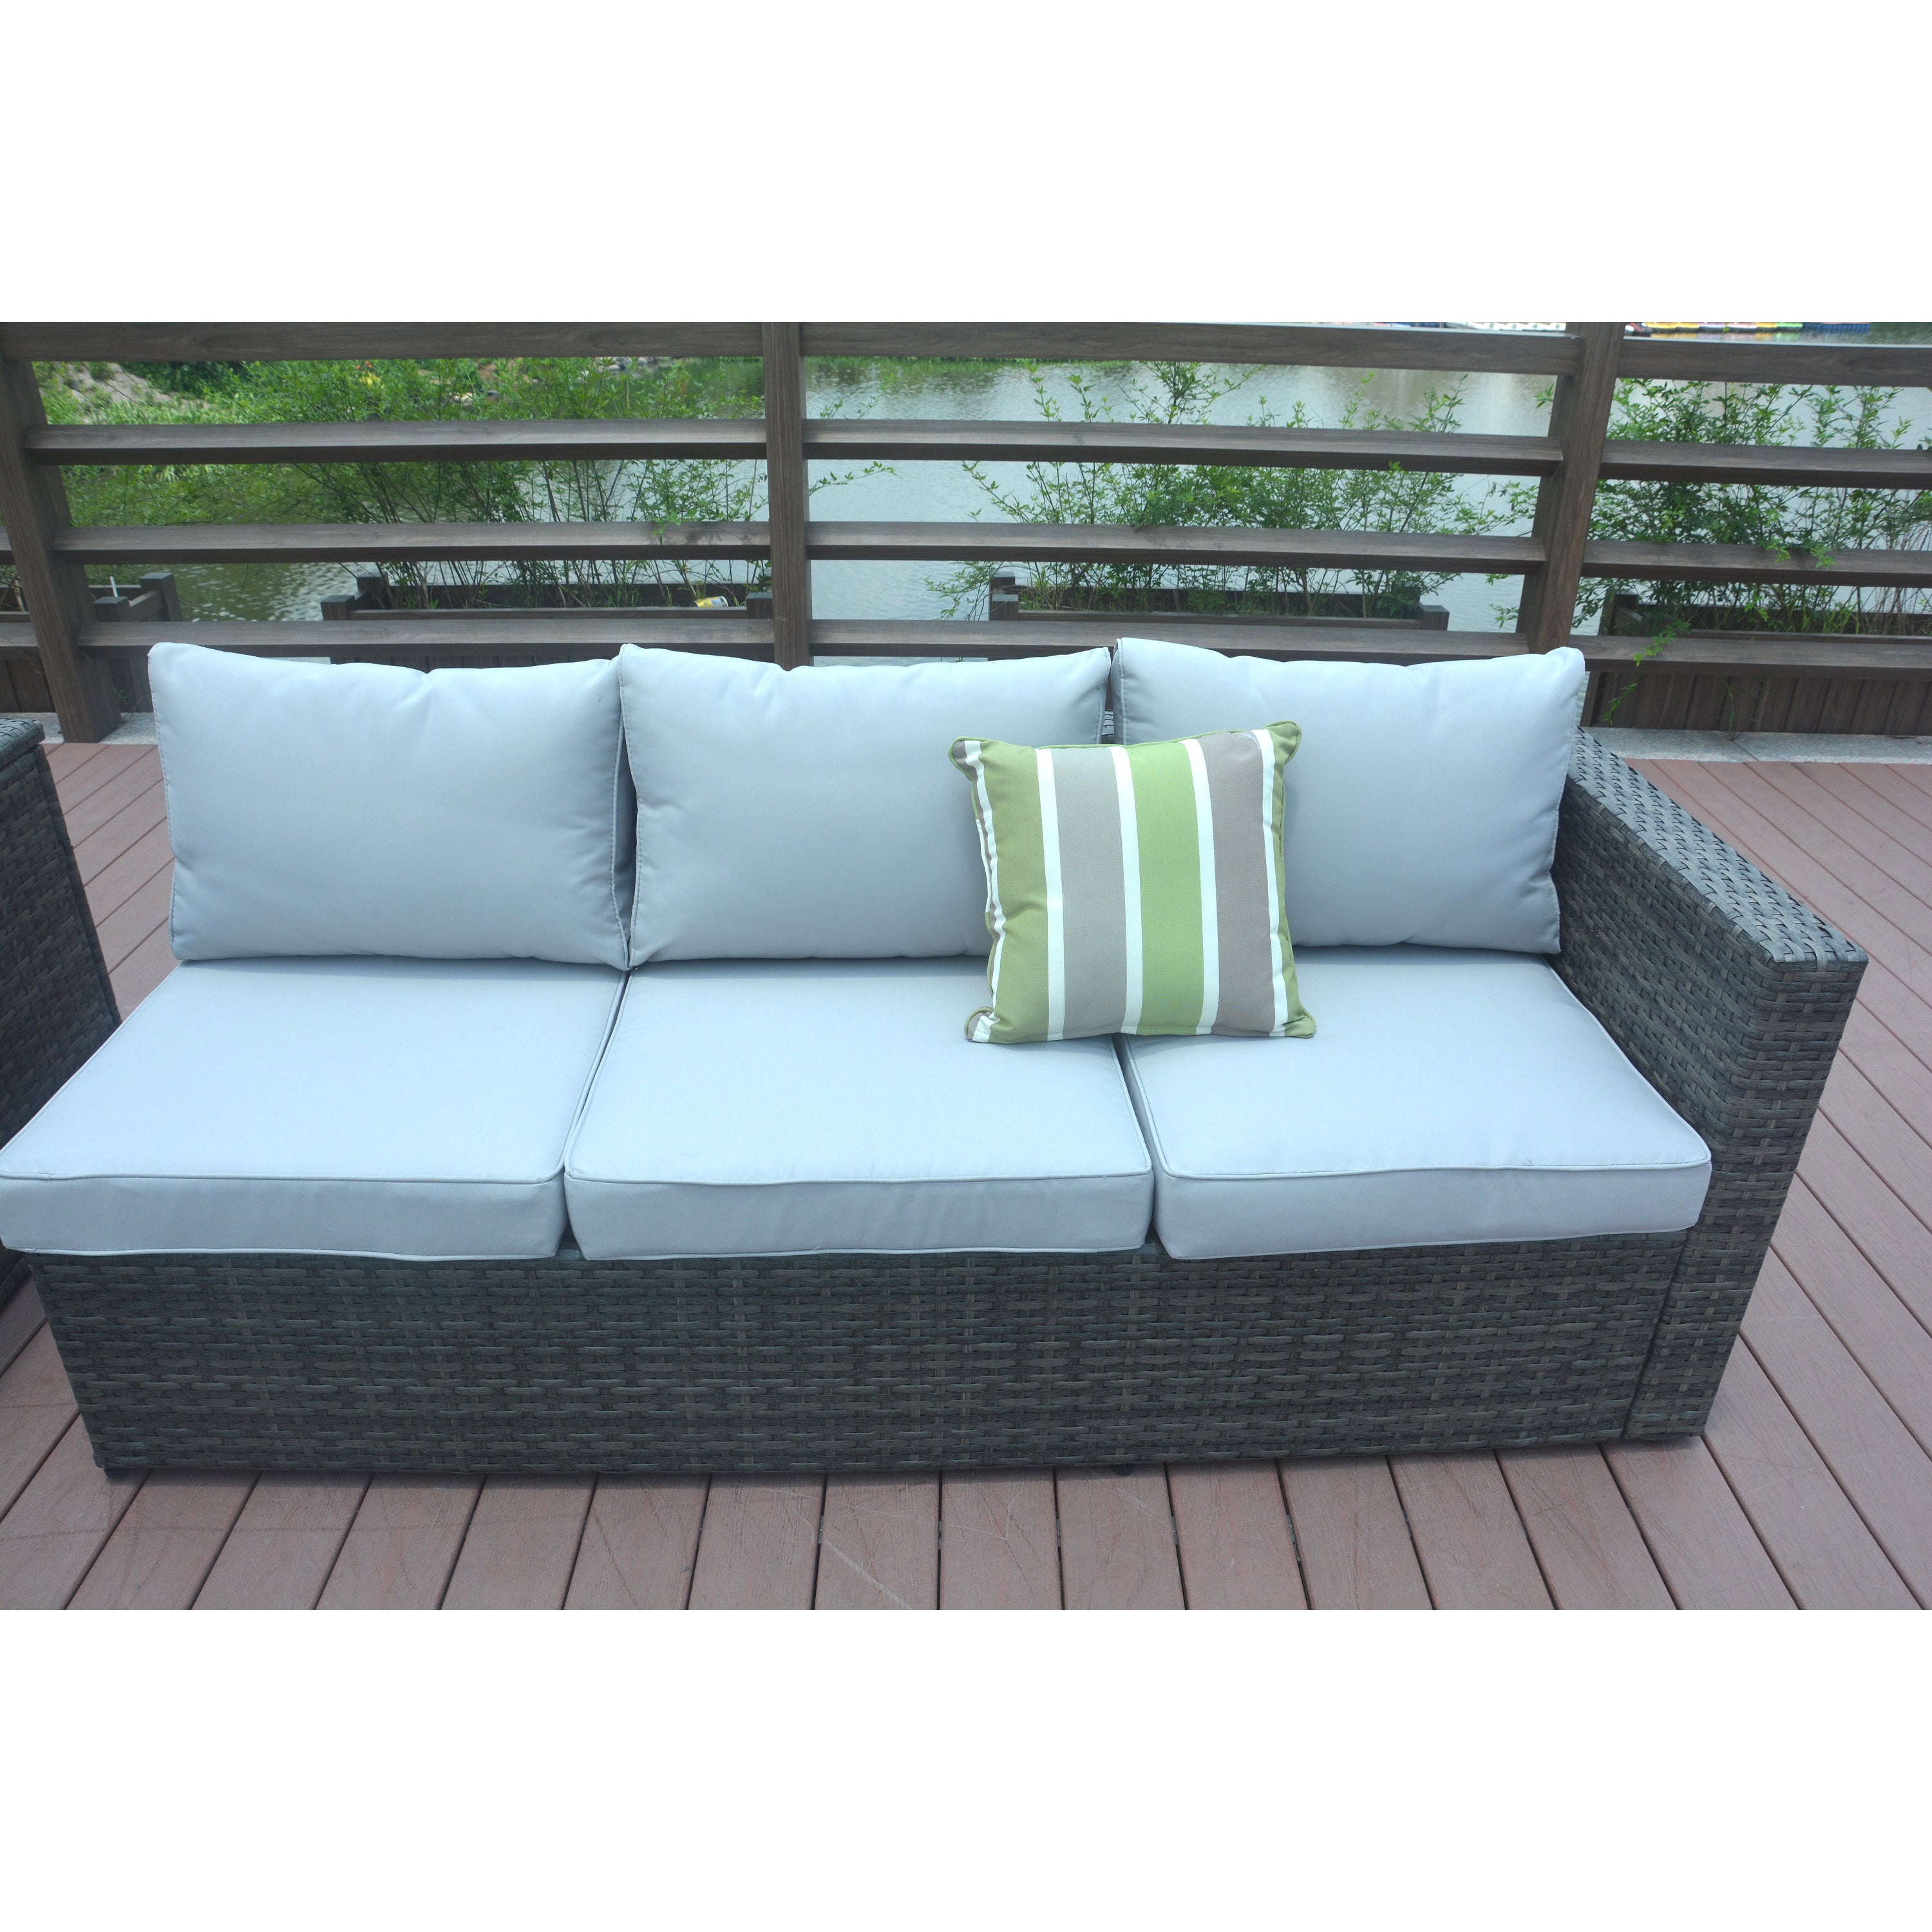 Jasmine 4 Piece Grey Wicker Patio Furniture Set With Cushion Box By Direct Free Shipping Today 23073478